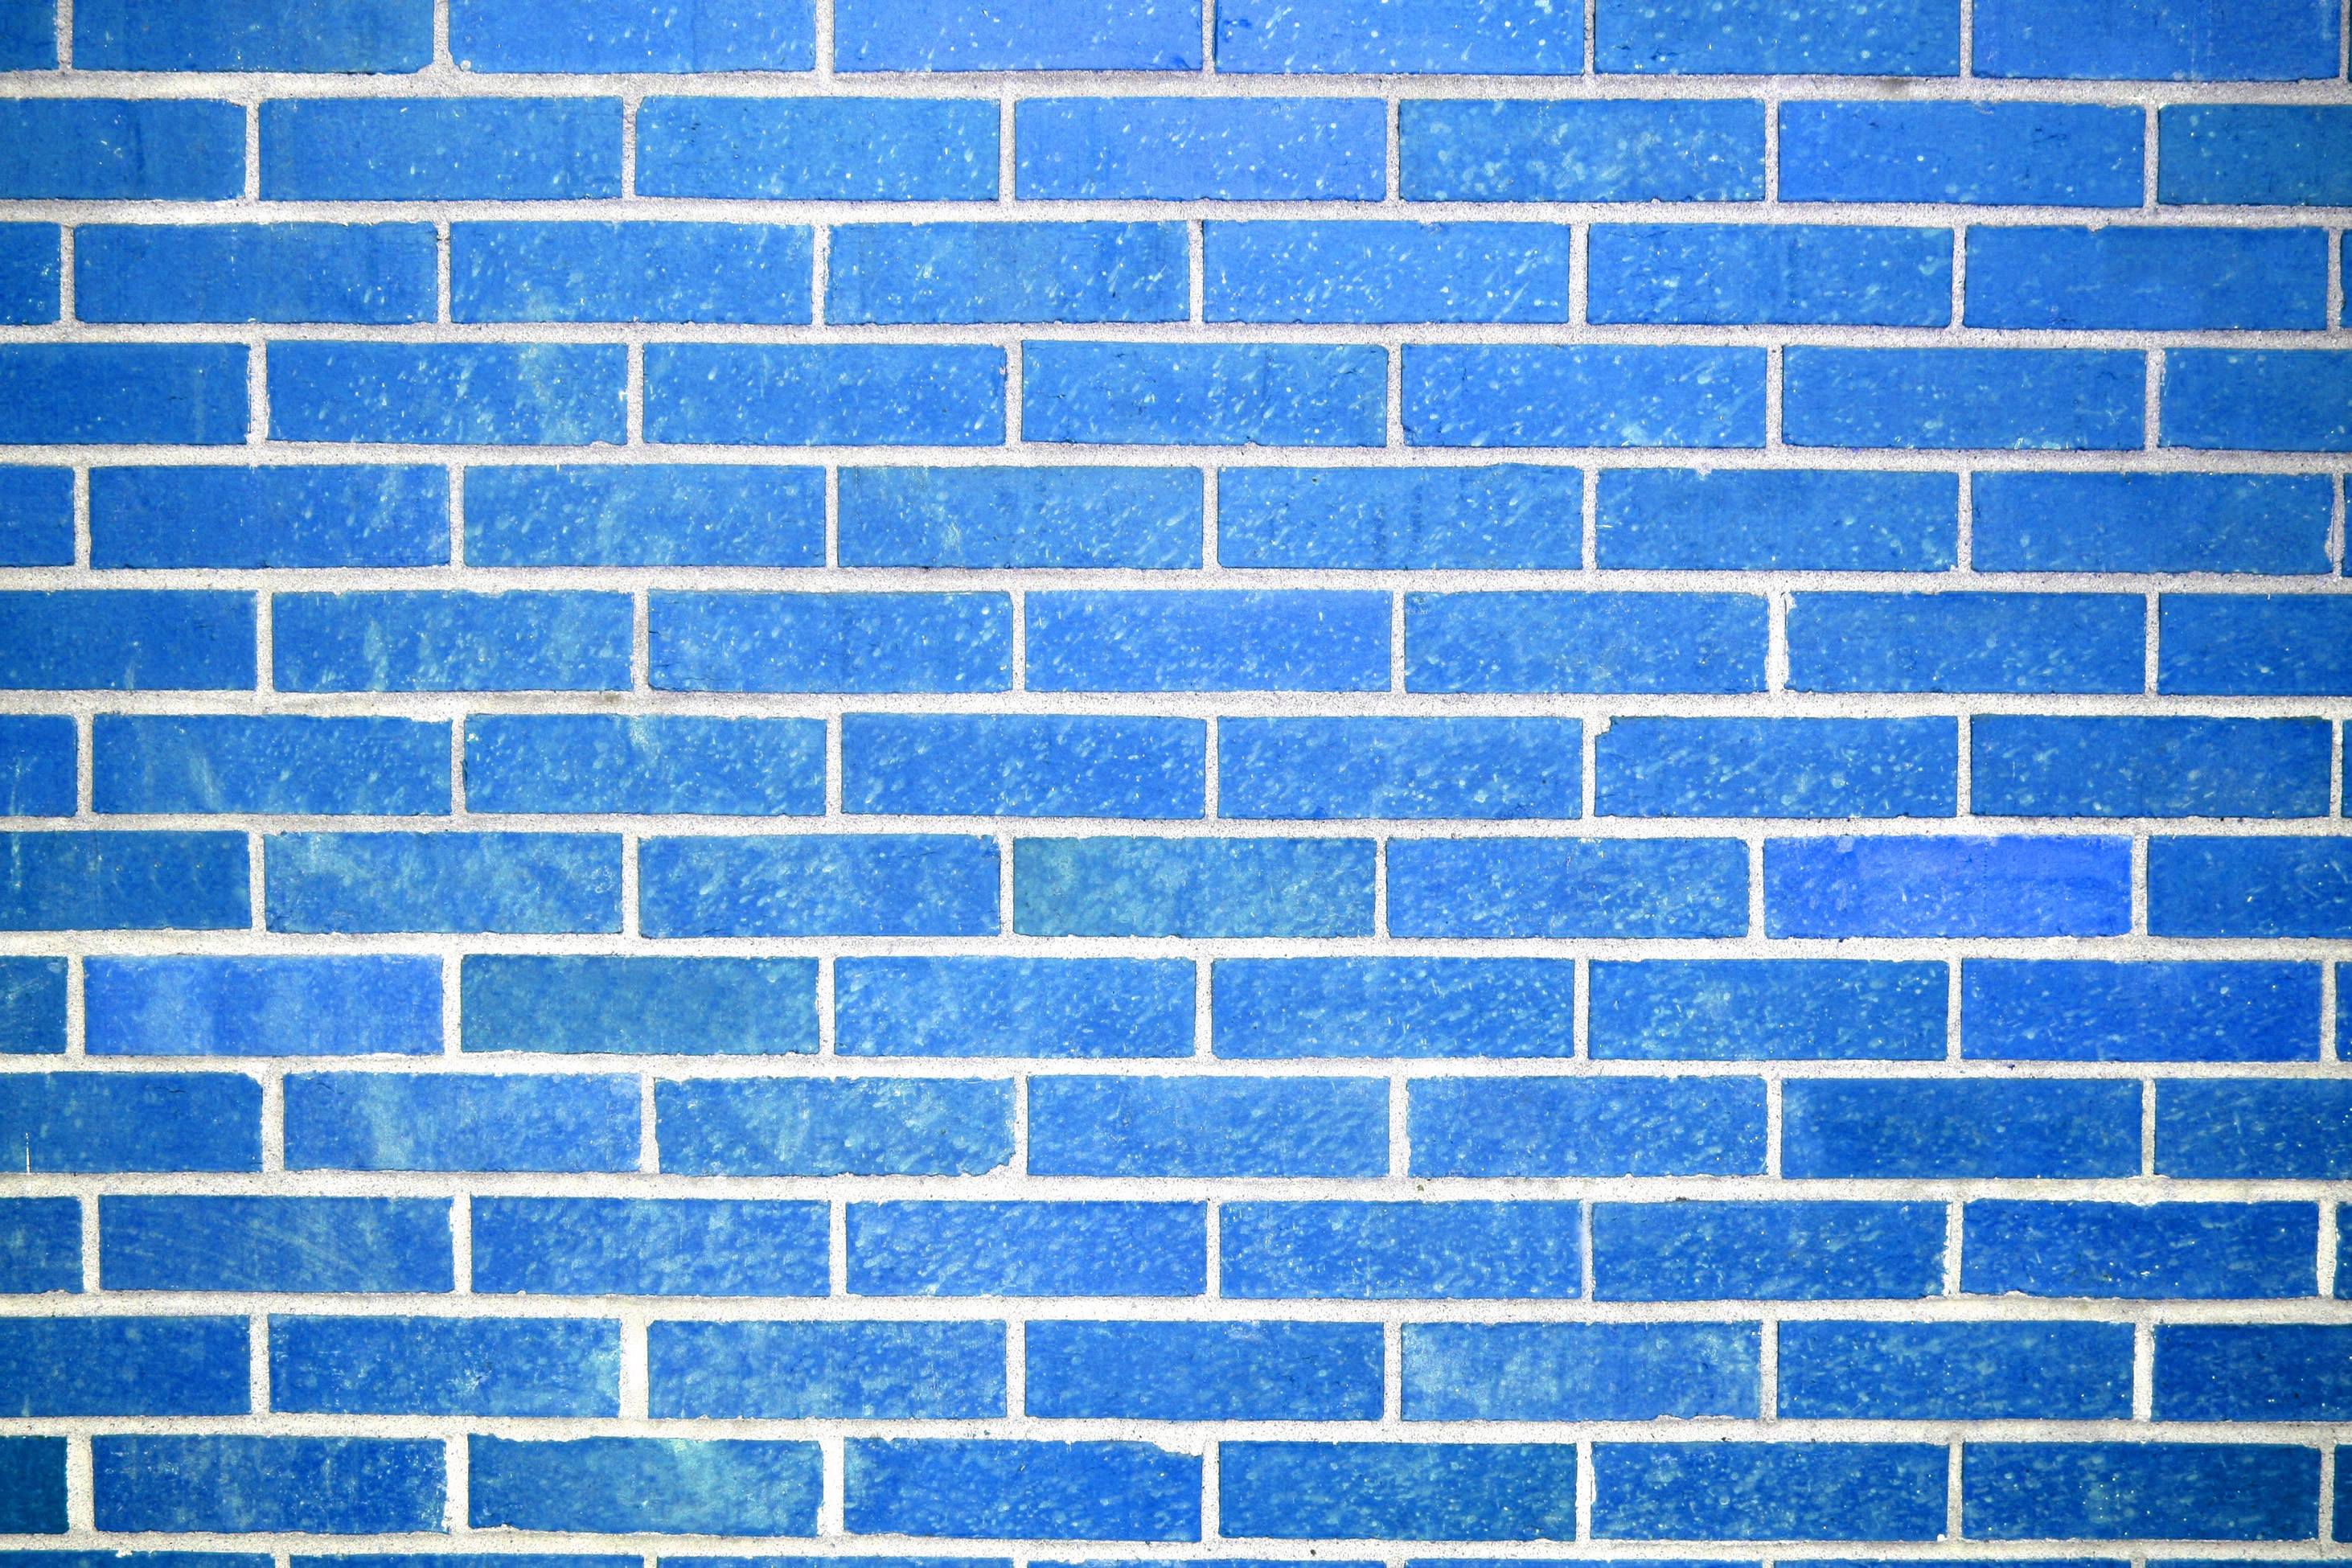 brick wall, texture, bricks, brick wall texture, background, download, bricks